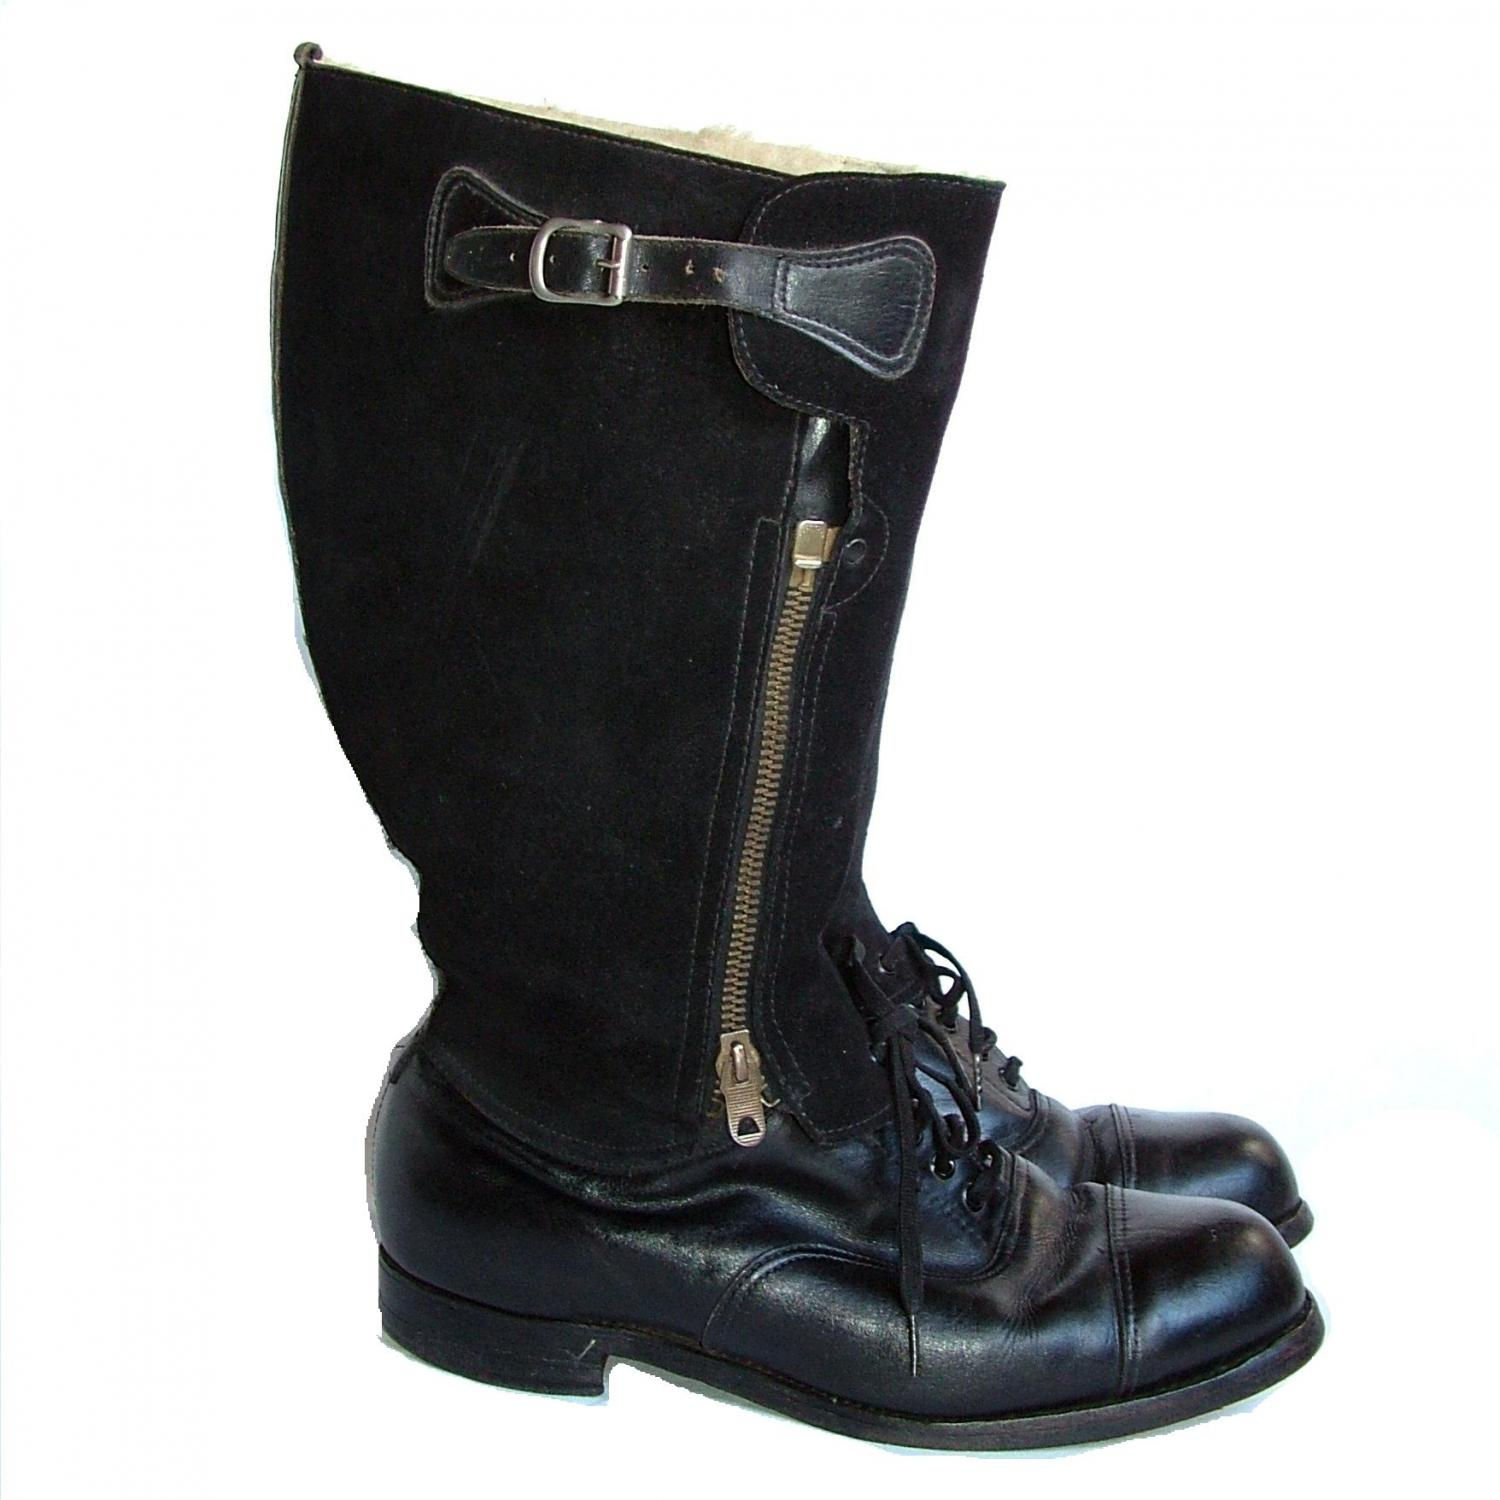 RAF 1943 Pattern Flying Boots, S7